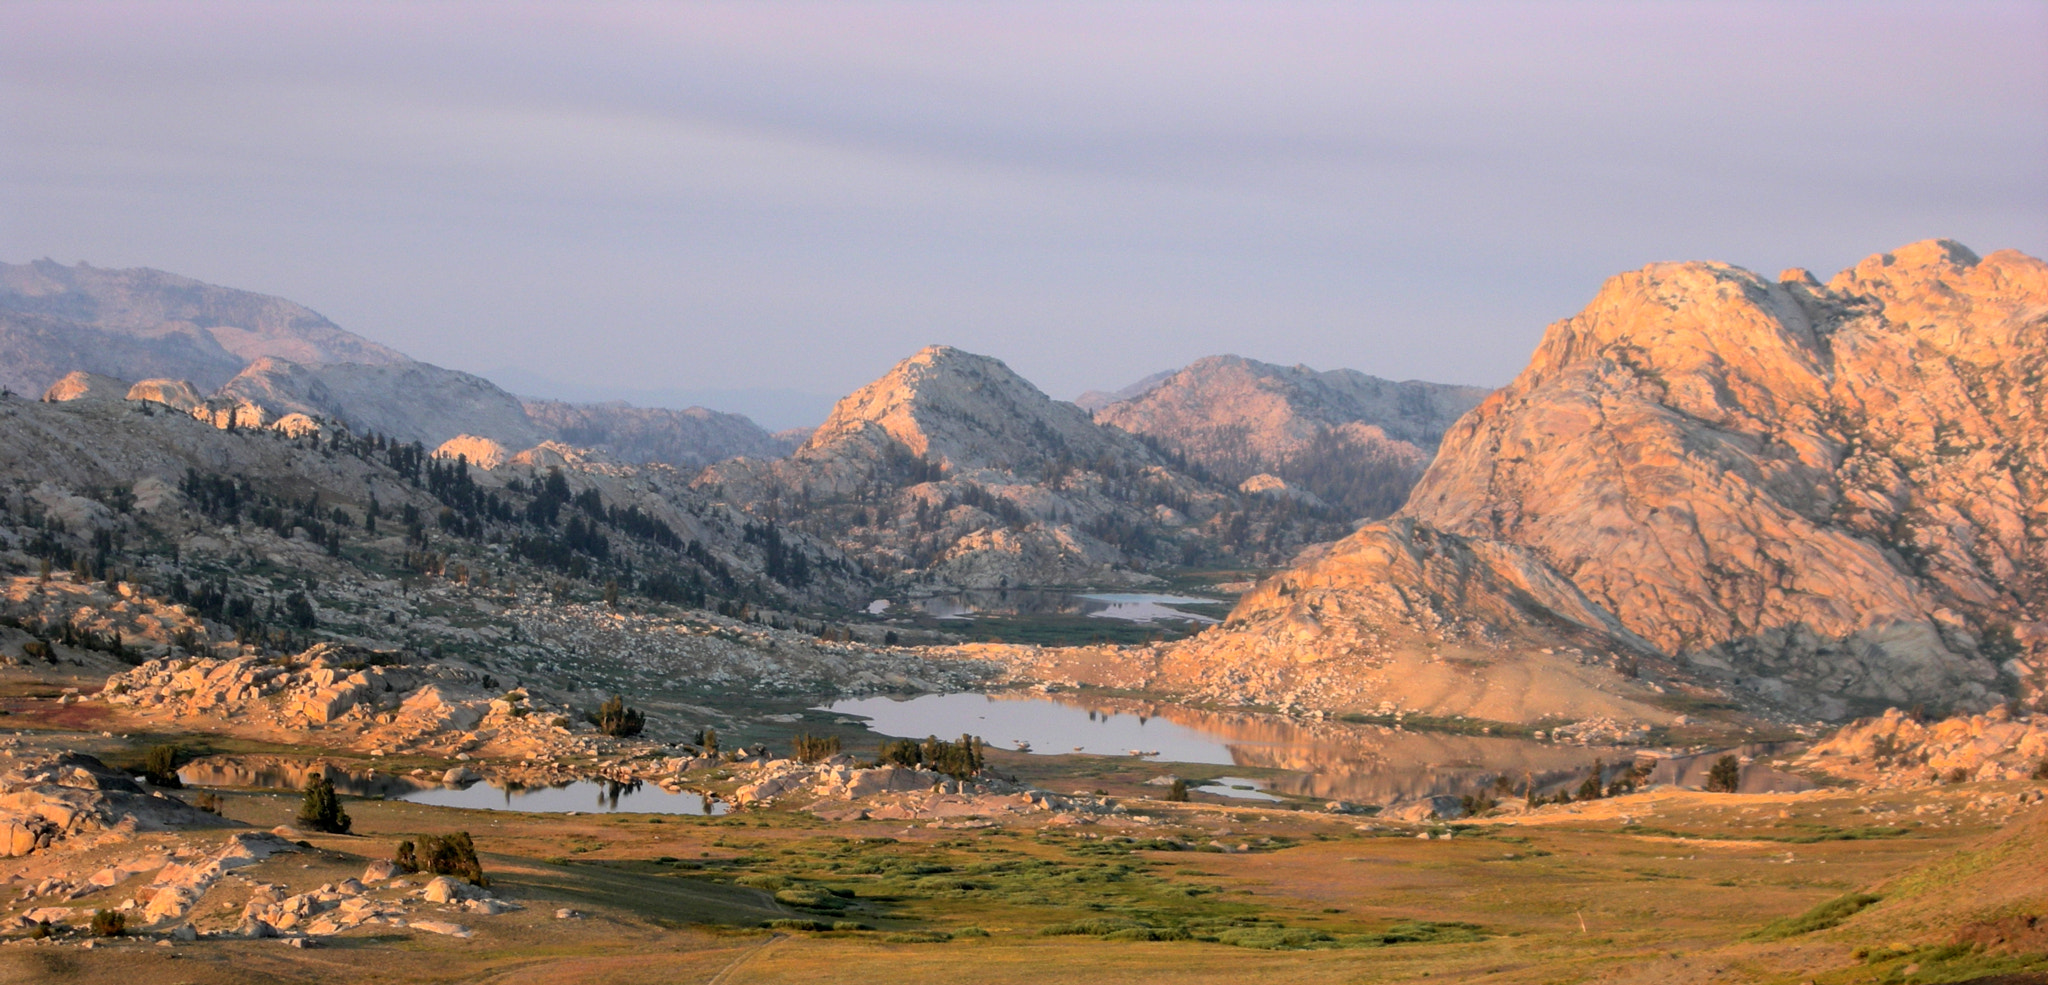 Photograph Emigrant Wilderness by Jerome Yesavage on 500px